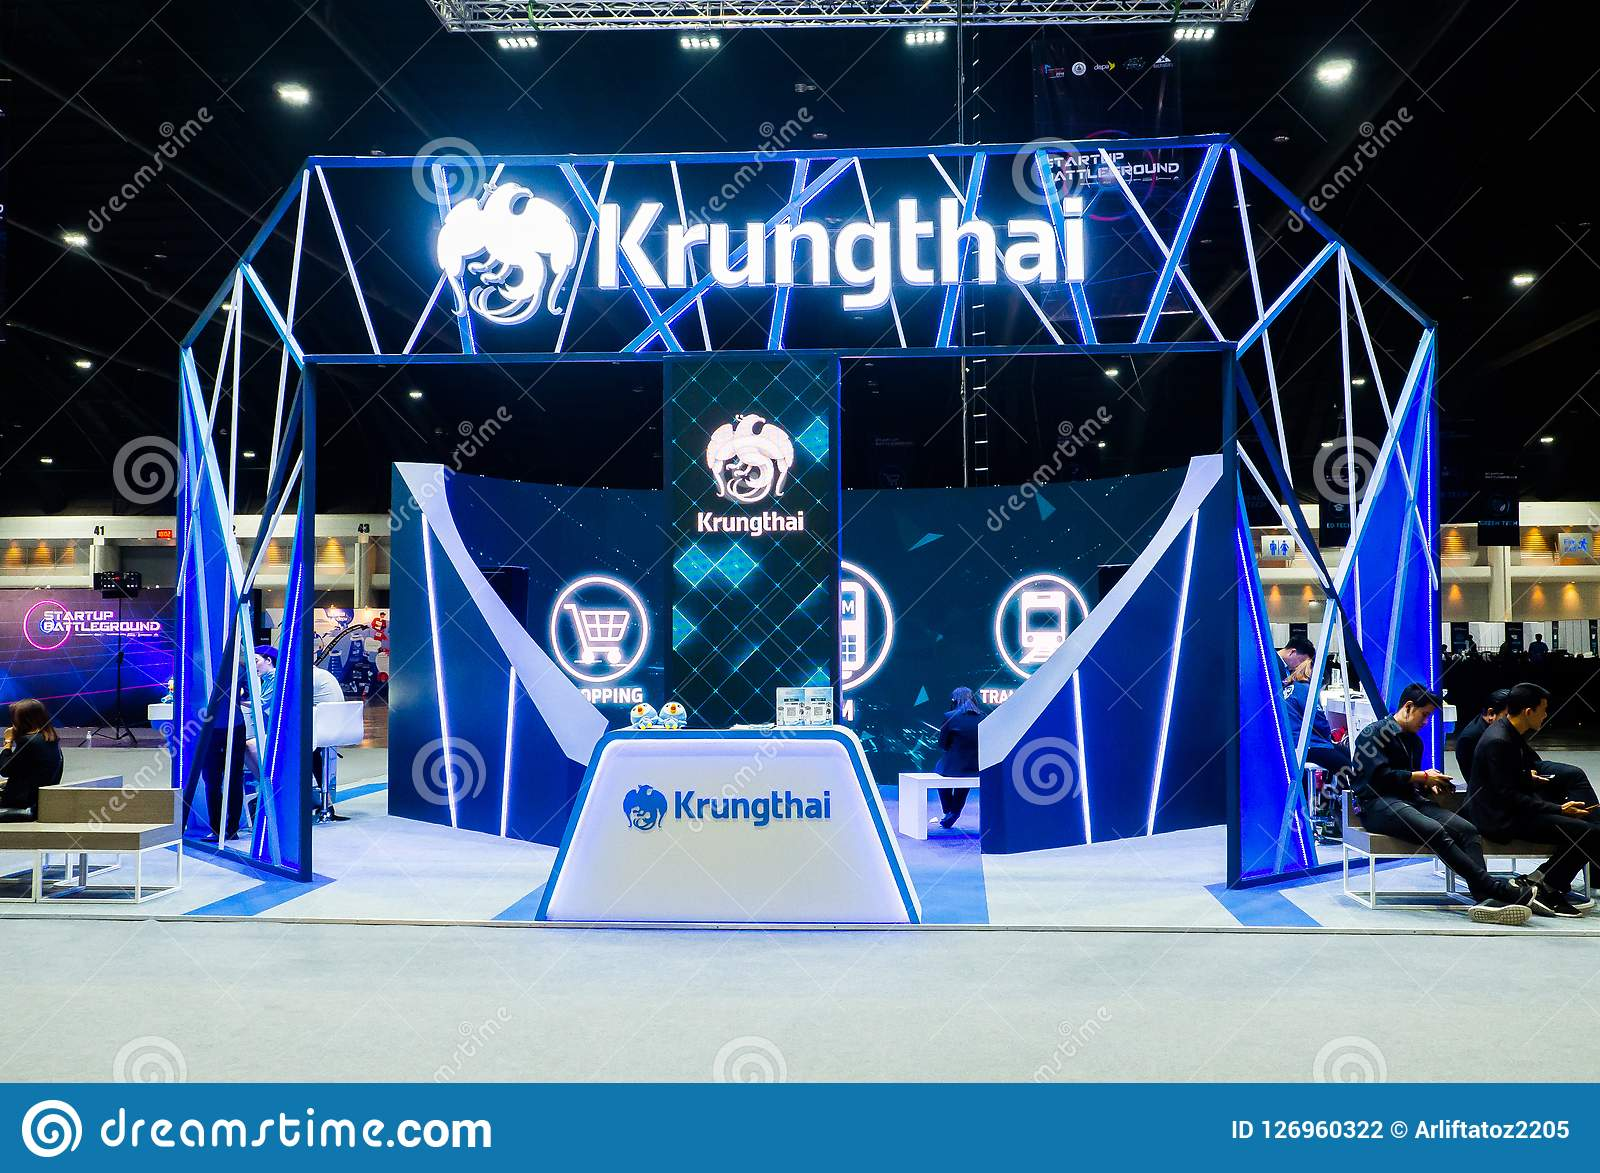 Exhibition Booth Photography : Krung thai or krungthai bank public company limited at exhibition